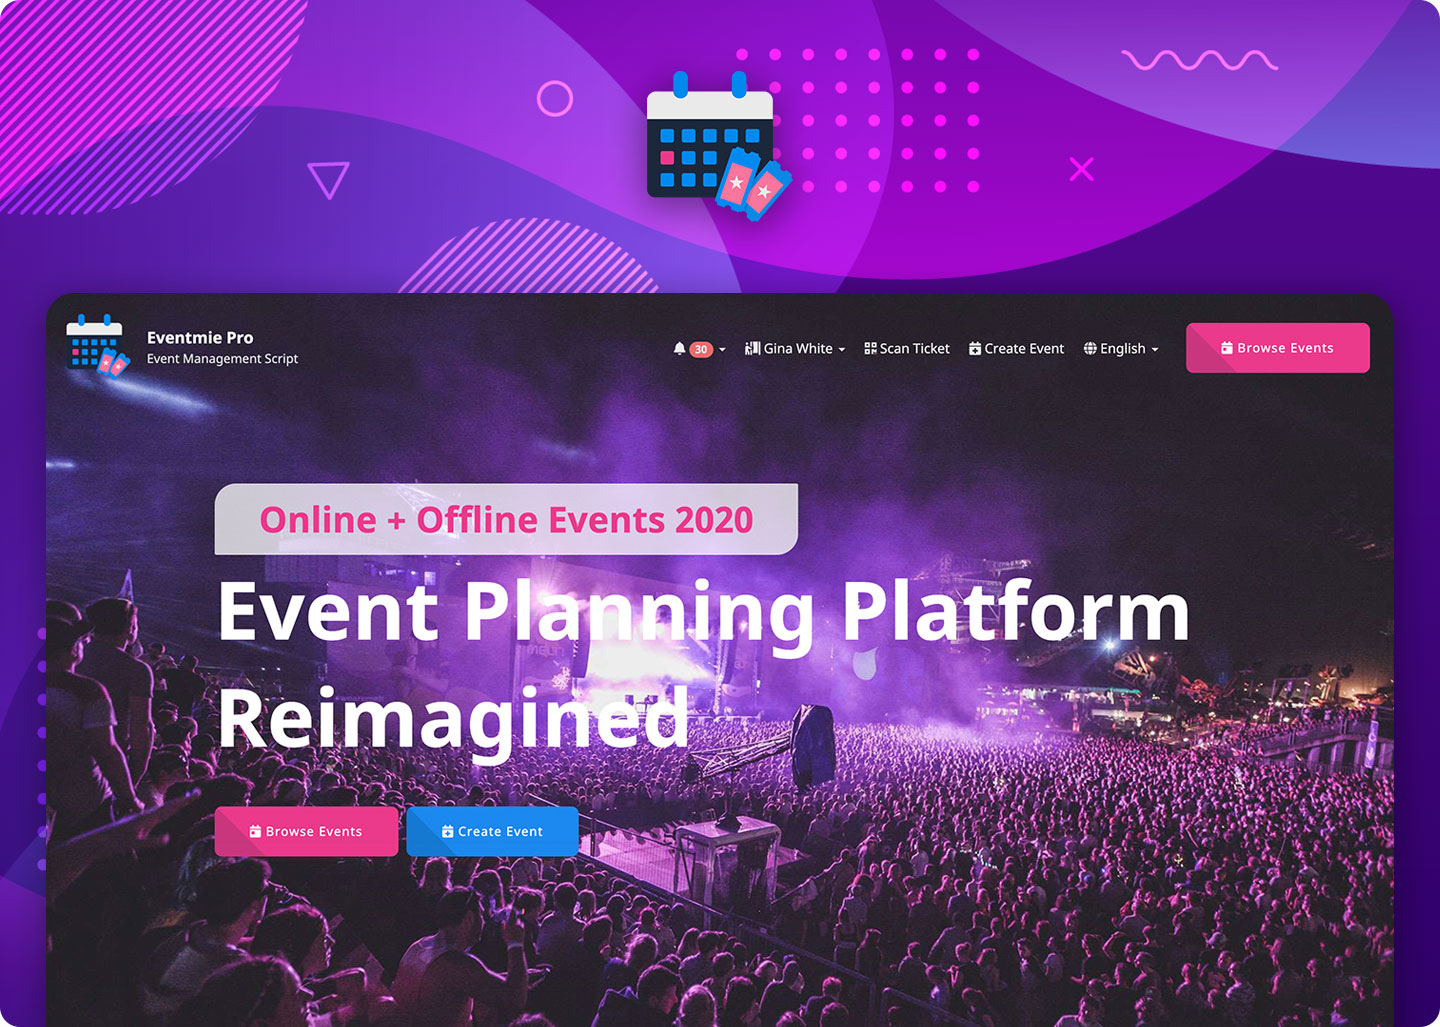 Eventmie Pro - Event planning reimagined with Laravel